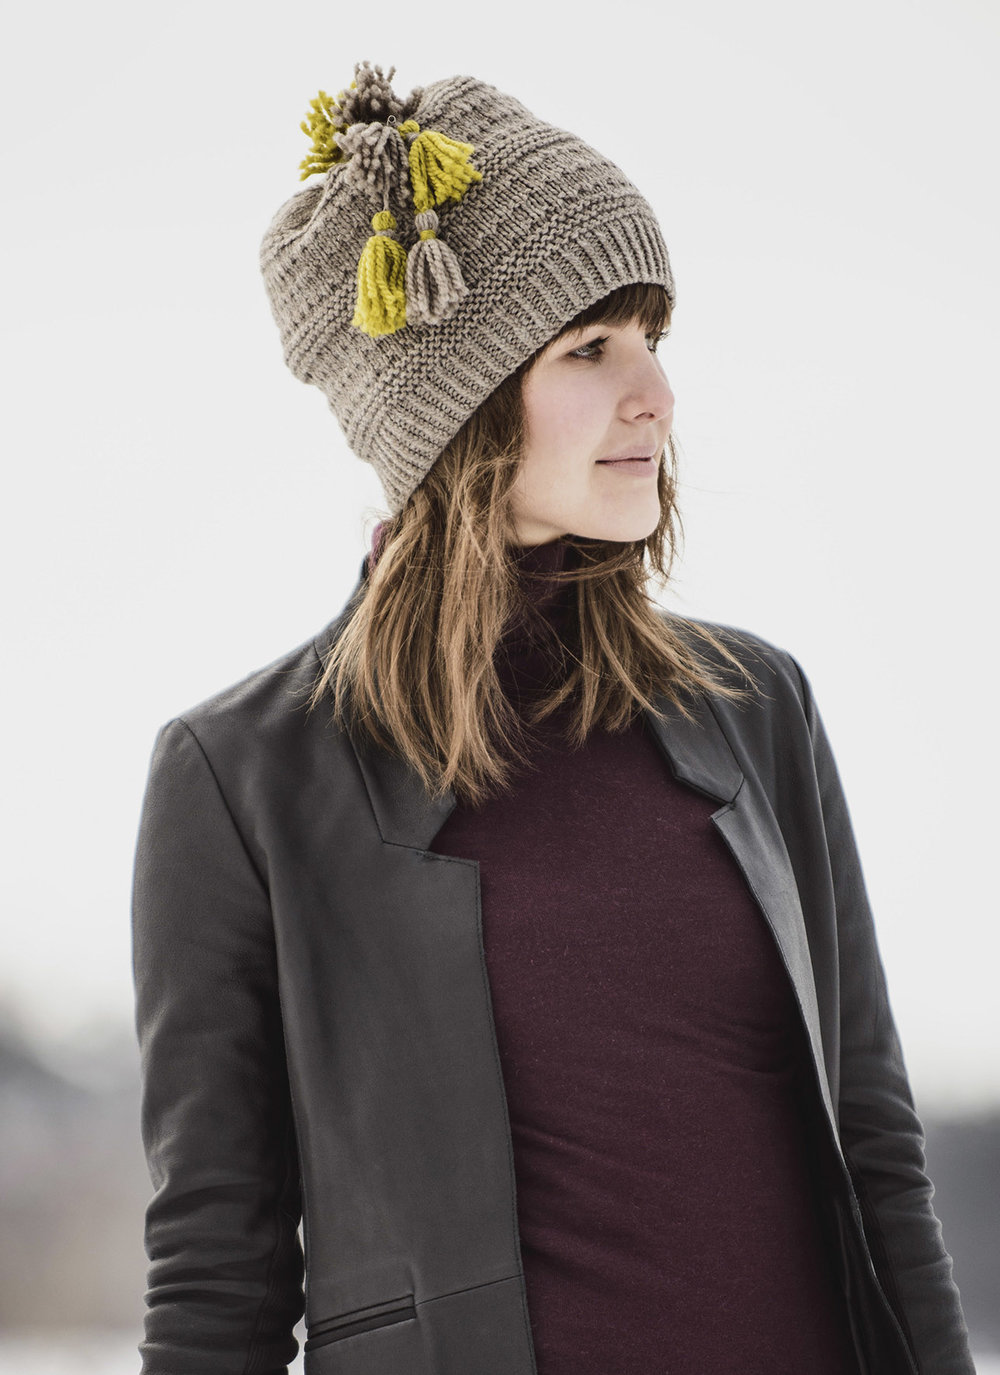 Blue Sky Fibers <strong>Tonka Bay Toque Pattern <br>$9.00</strong>